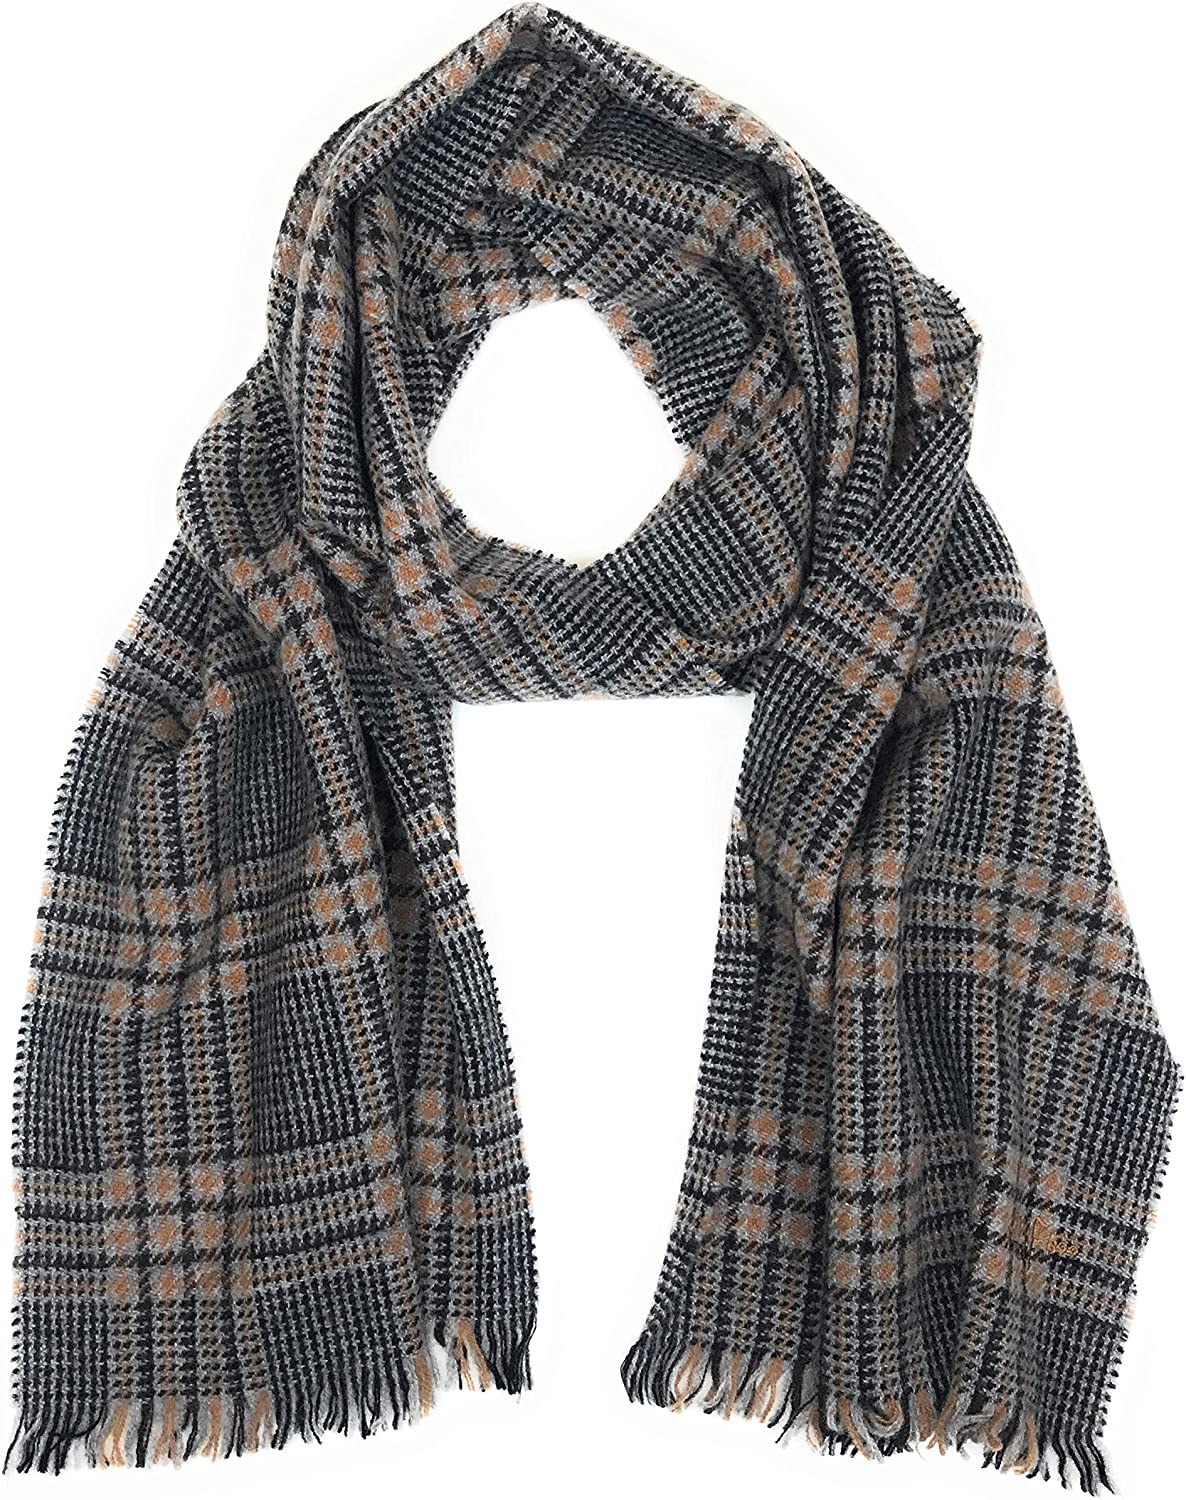 Hickey Freeman Men's 100% Italian Cashmere Lightweight Scarf, 72 inches x 22 inches